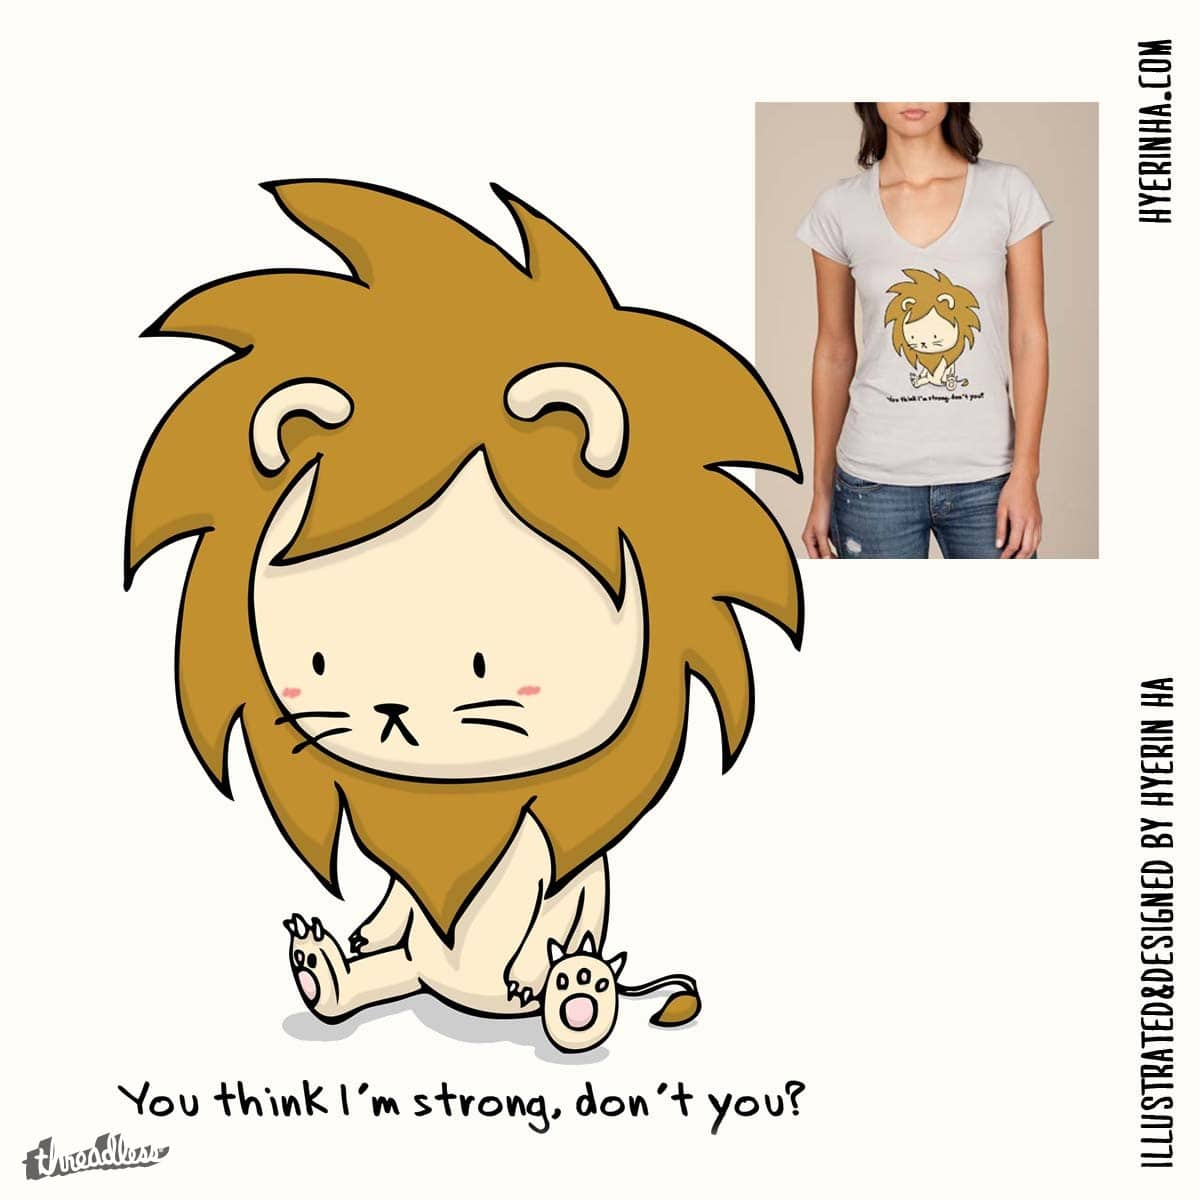 Strong by bluezel on Threadless